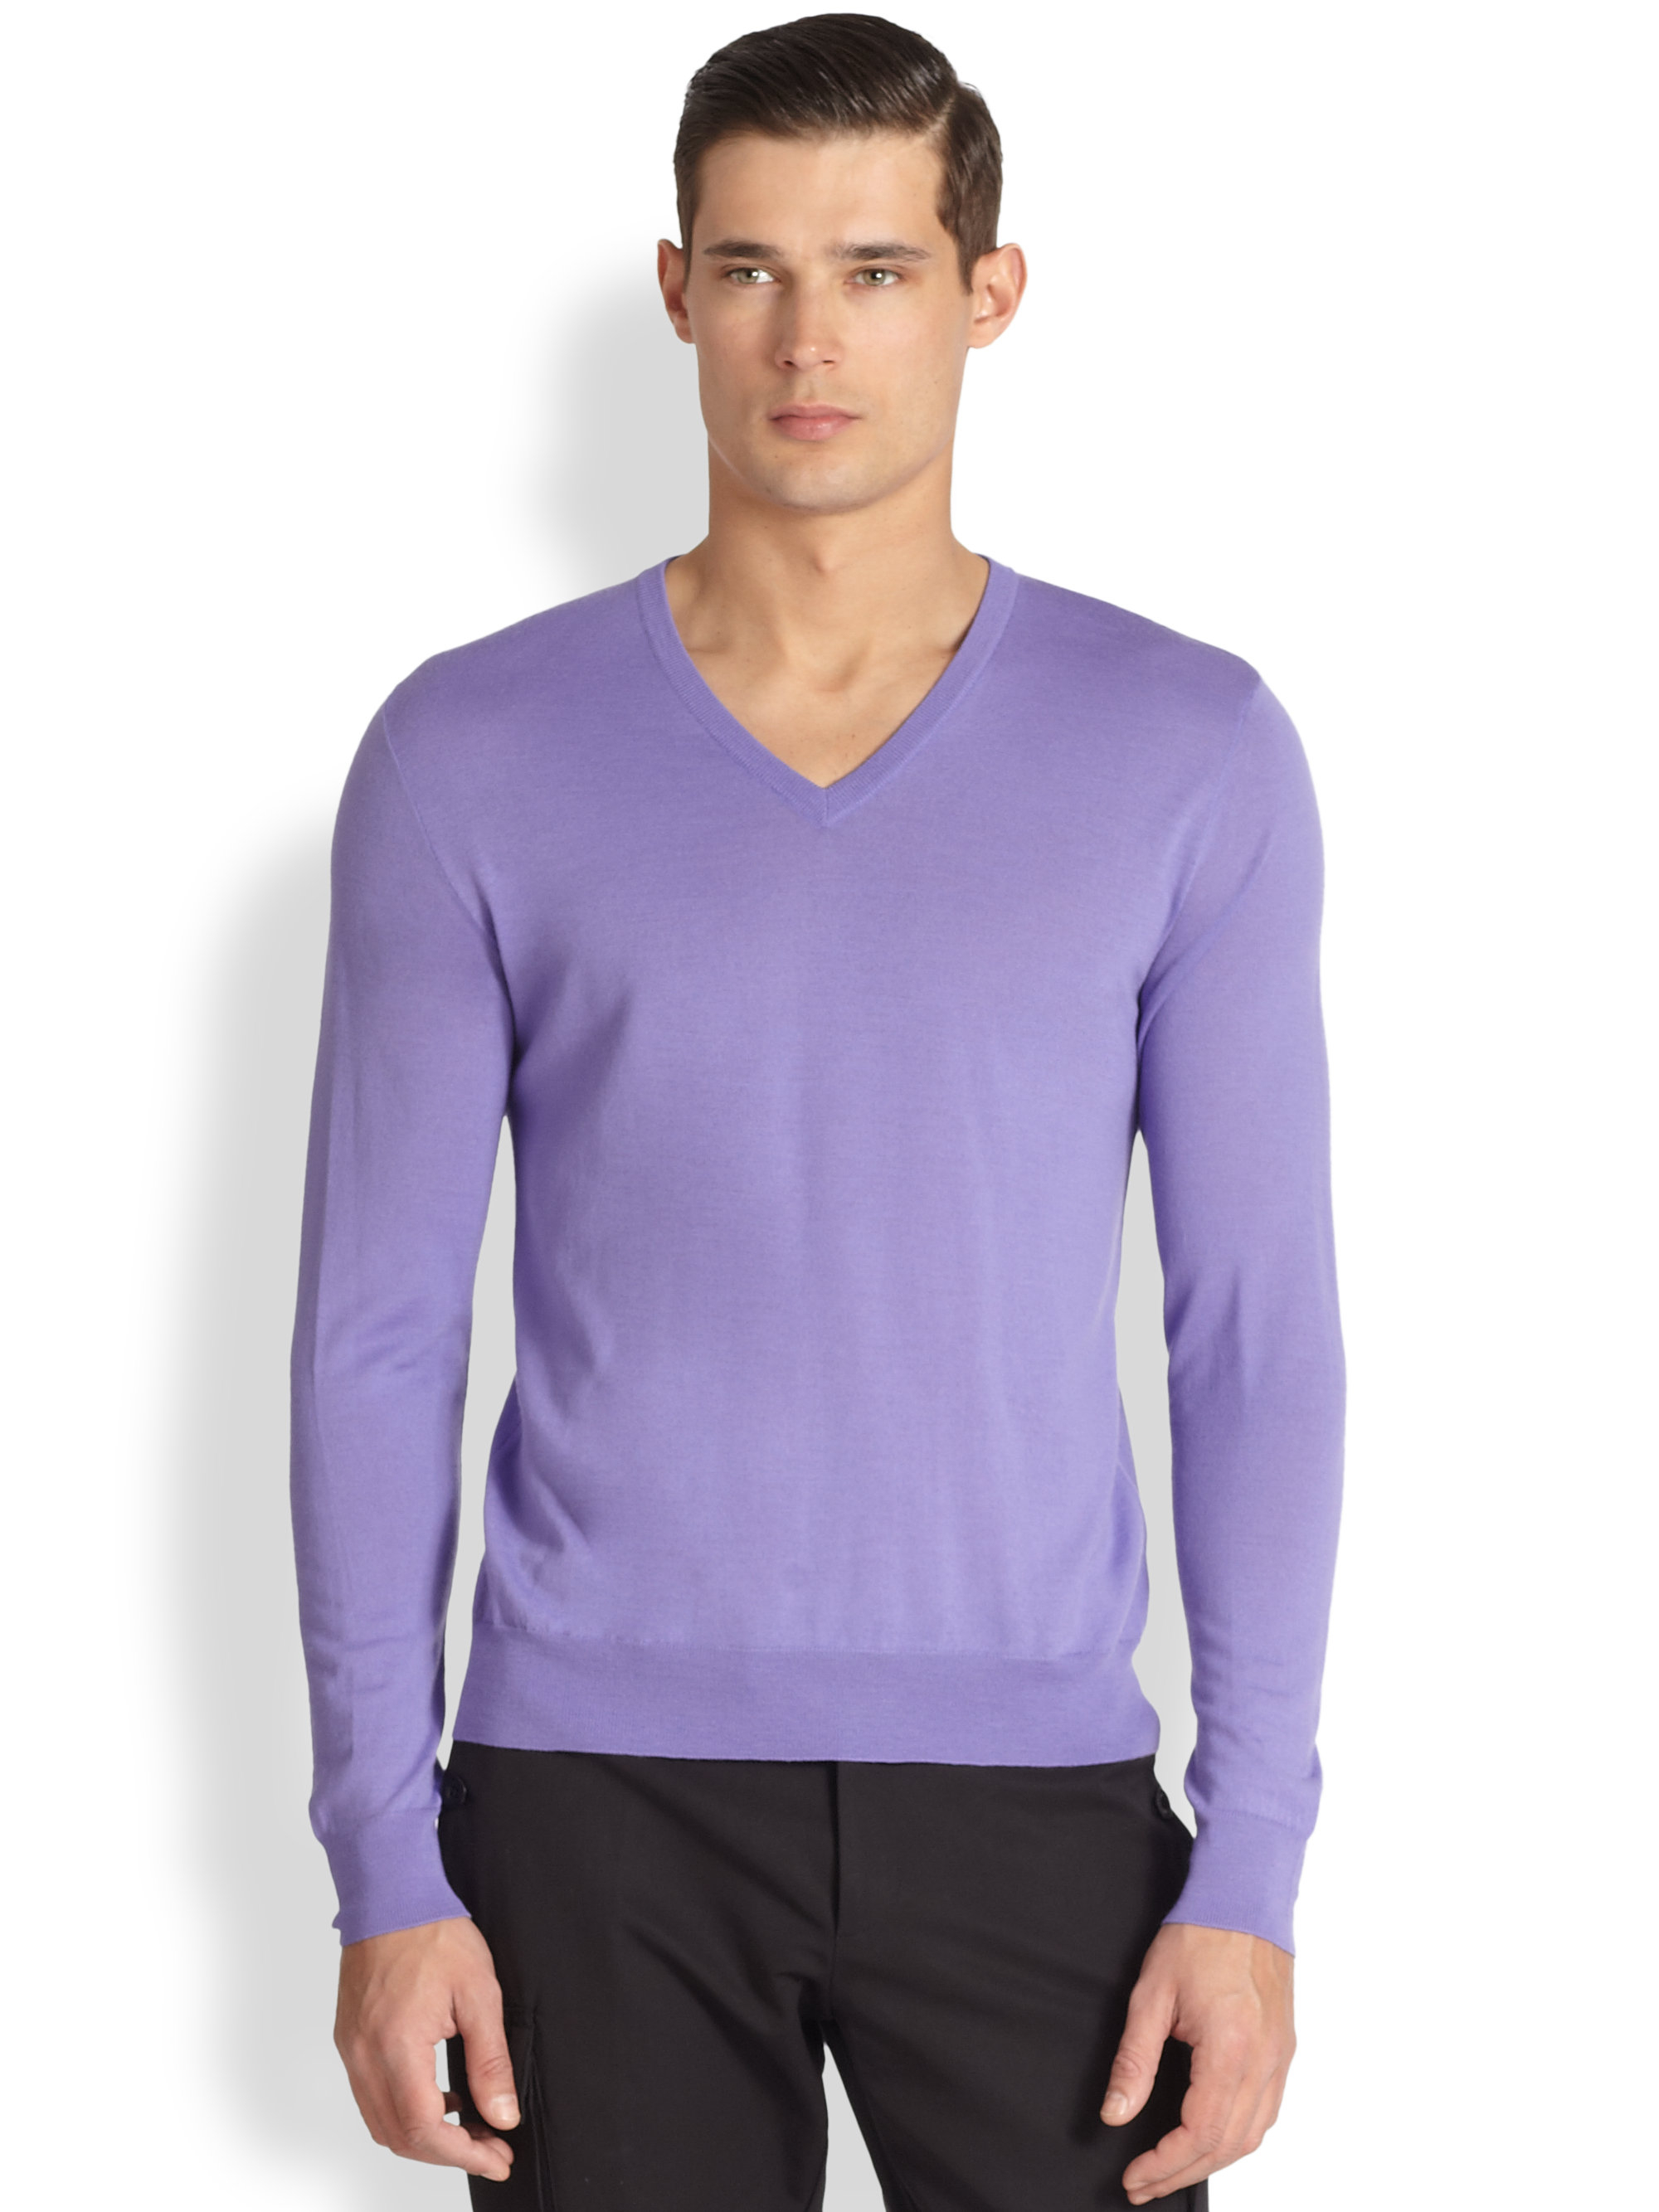 Ralph lauren black label Wool And Cashmere V-Neck Sweater in ...